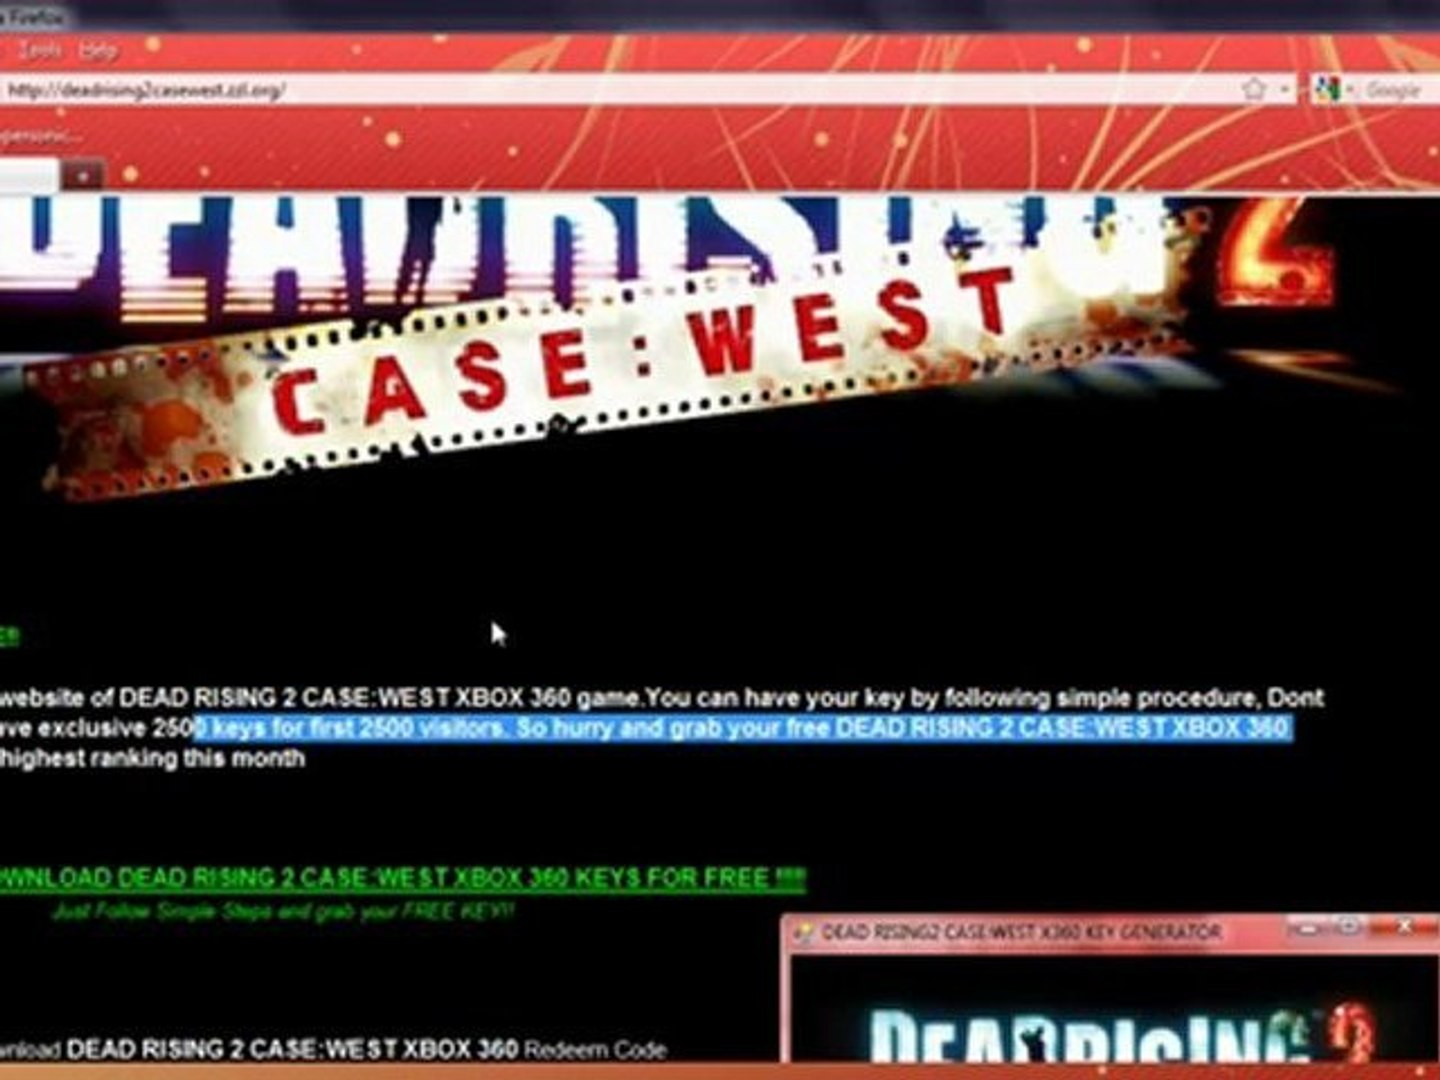 Download Dead Rising 2 Case West Xbox 360 Cd Keys 100 Real